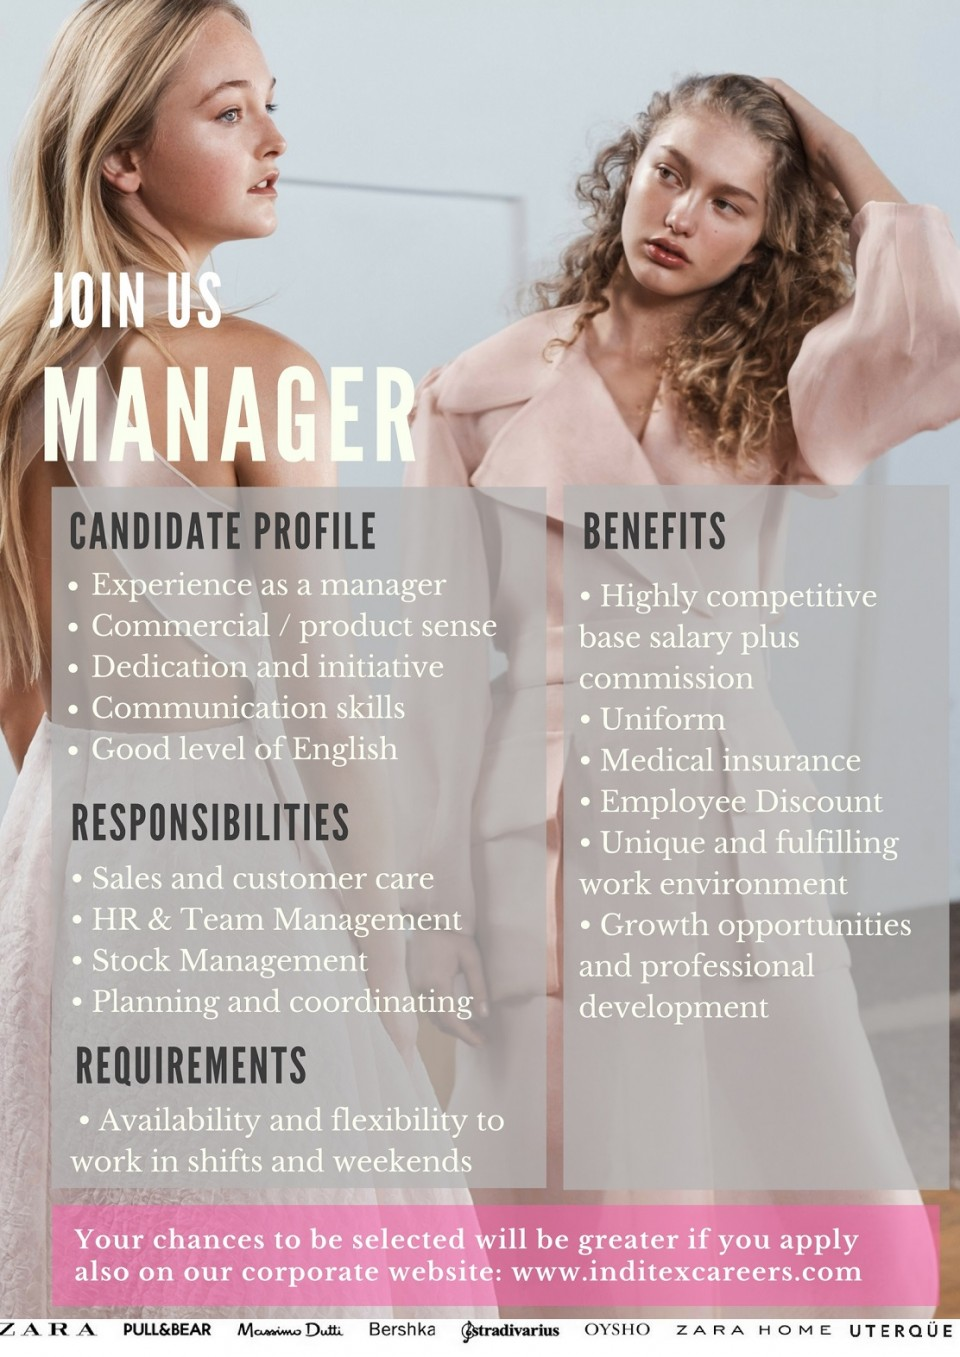 Join our team as a: